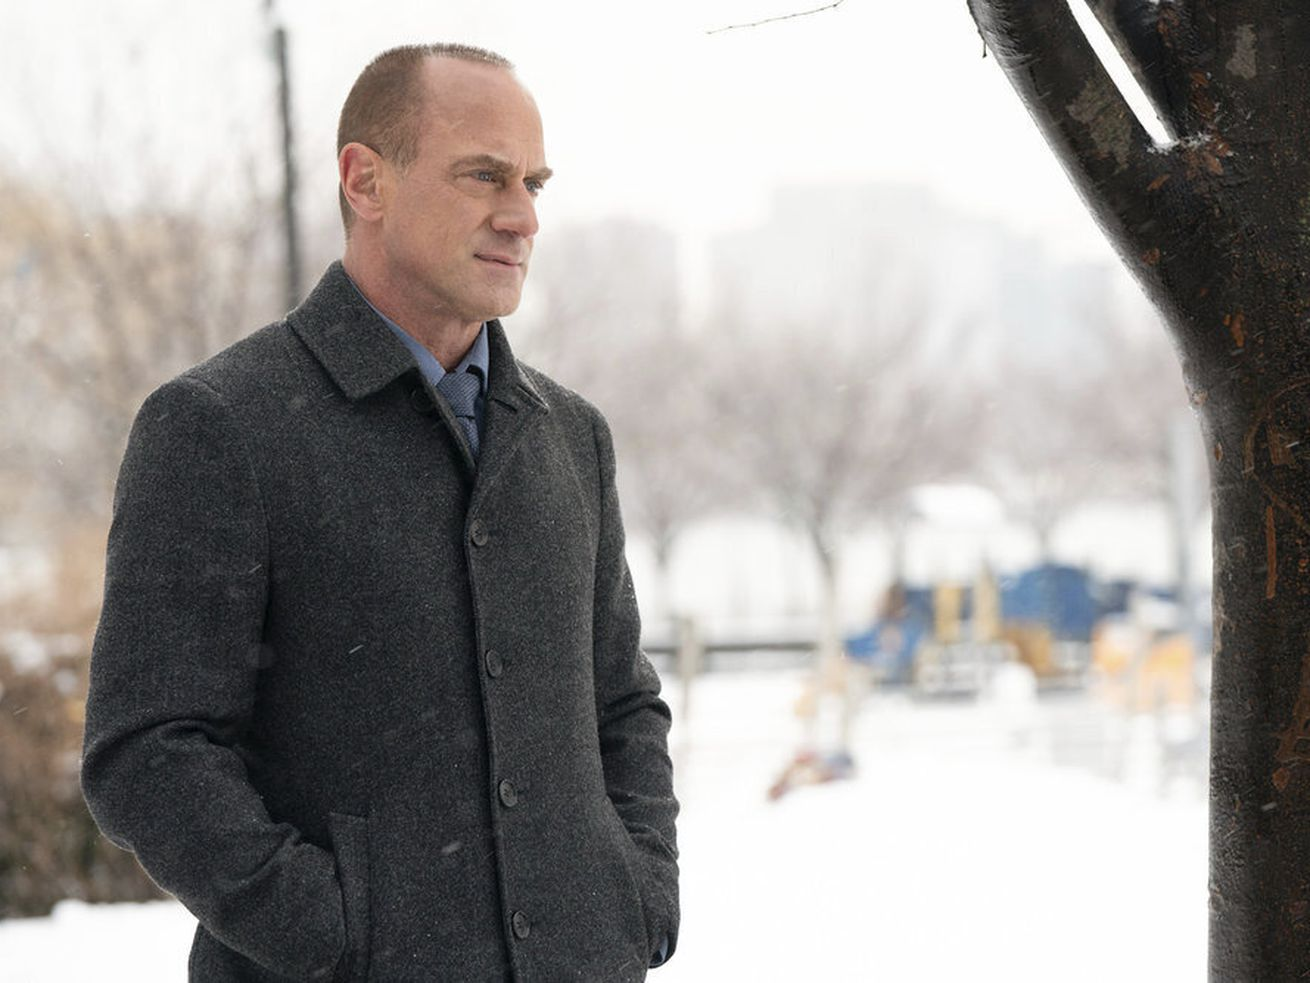 """Christopher Meloni portrays Det. Elliot Stabler in a scene from the new """"Law & Order: Organized Crime"""" series premiering April. 1 on NBC."""